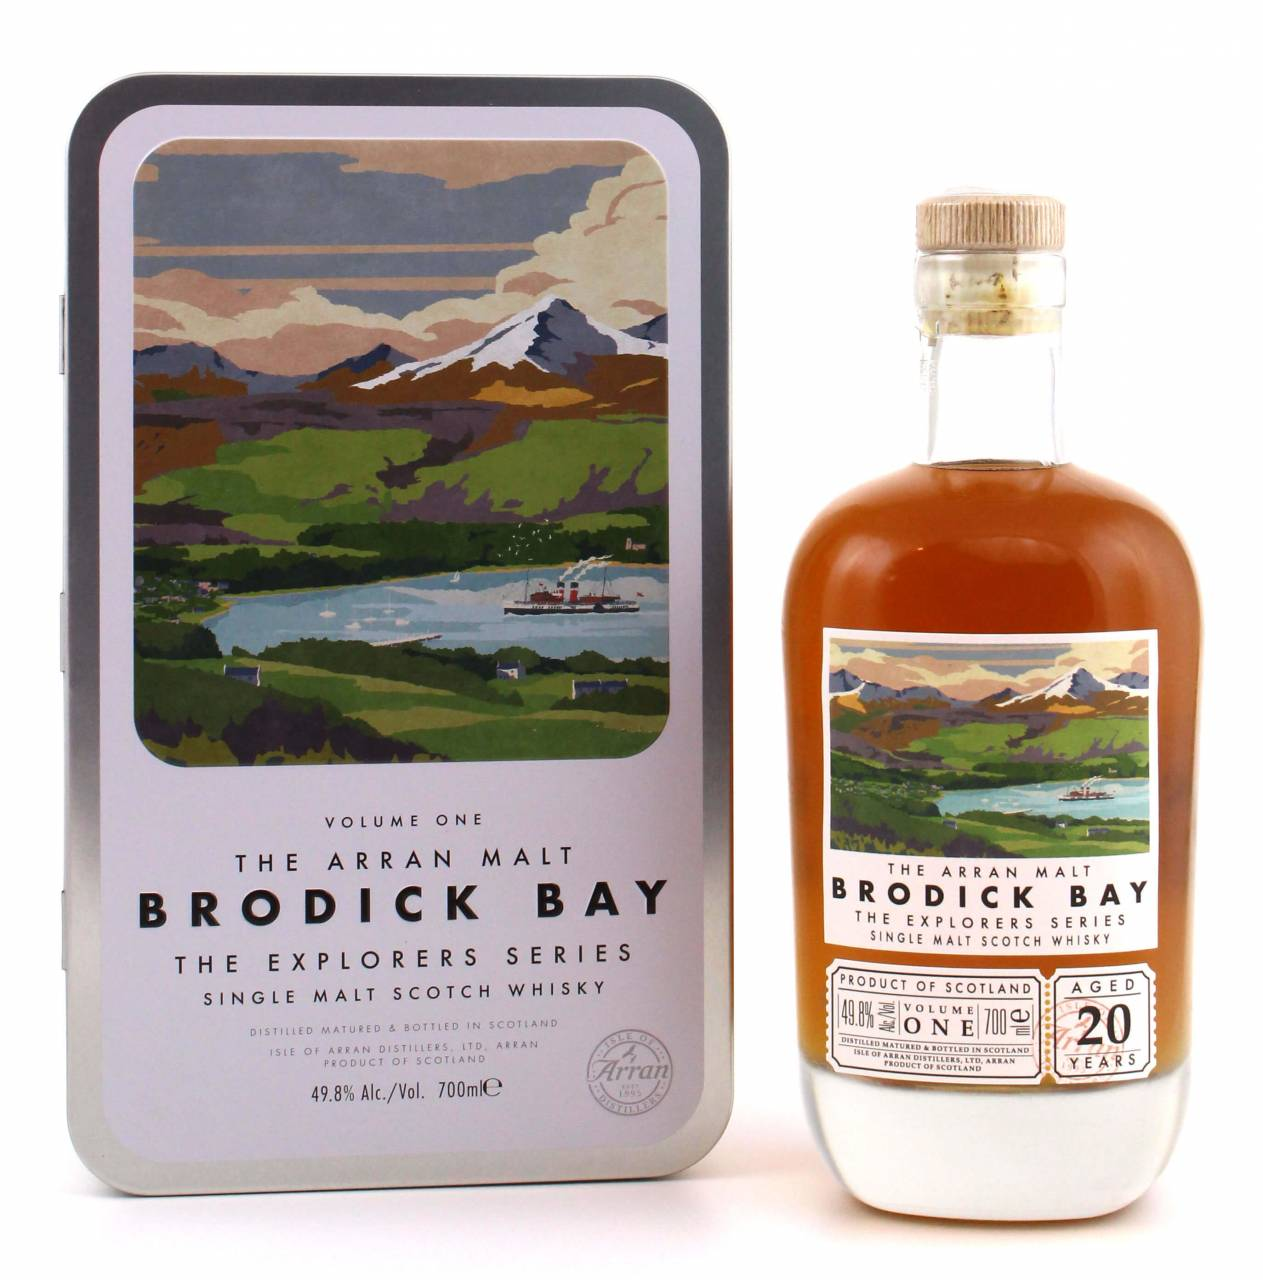 Arran Brodick Bay Whisky The Explorers Series #...